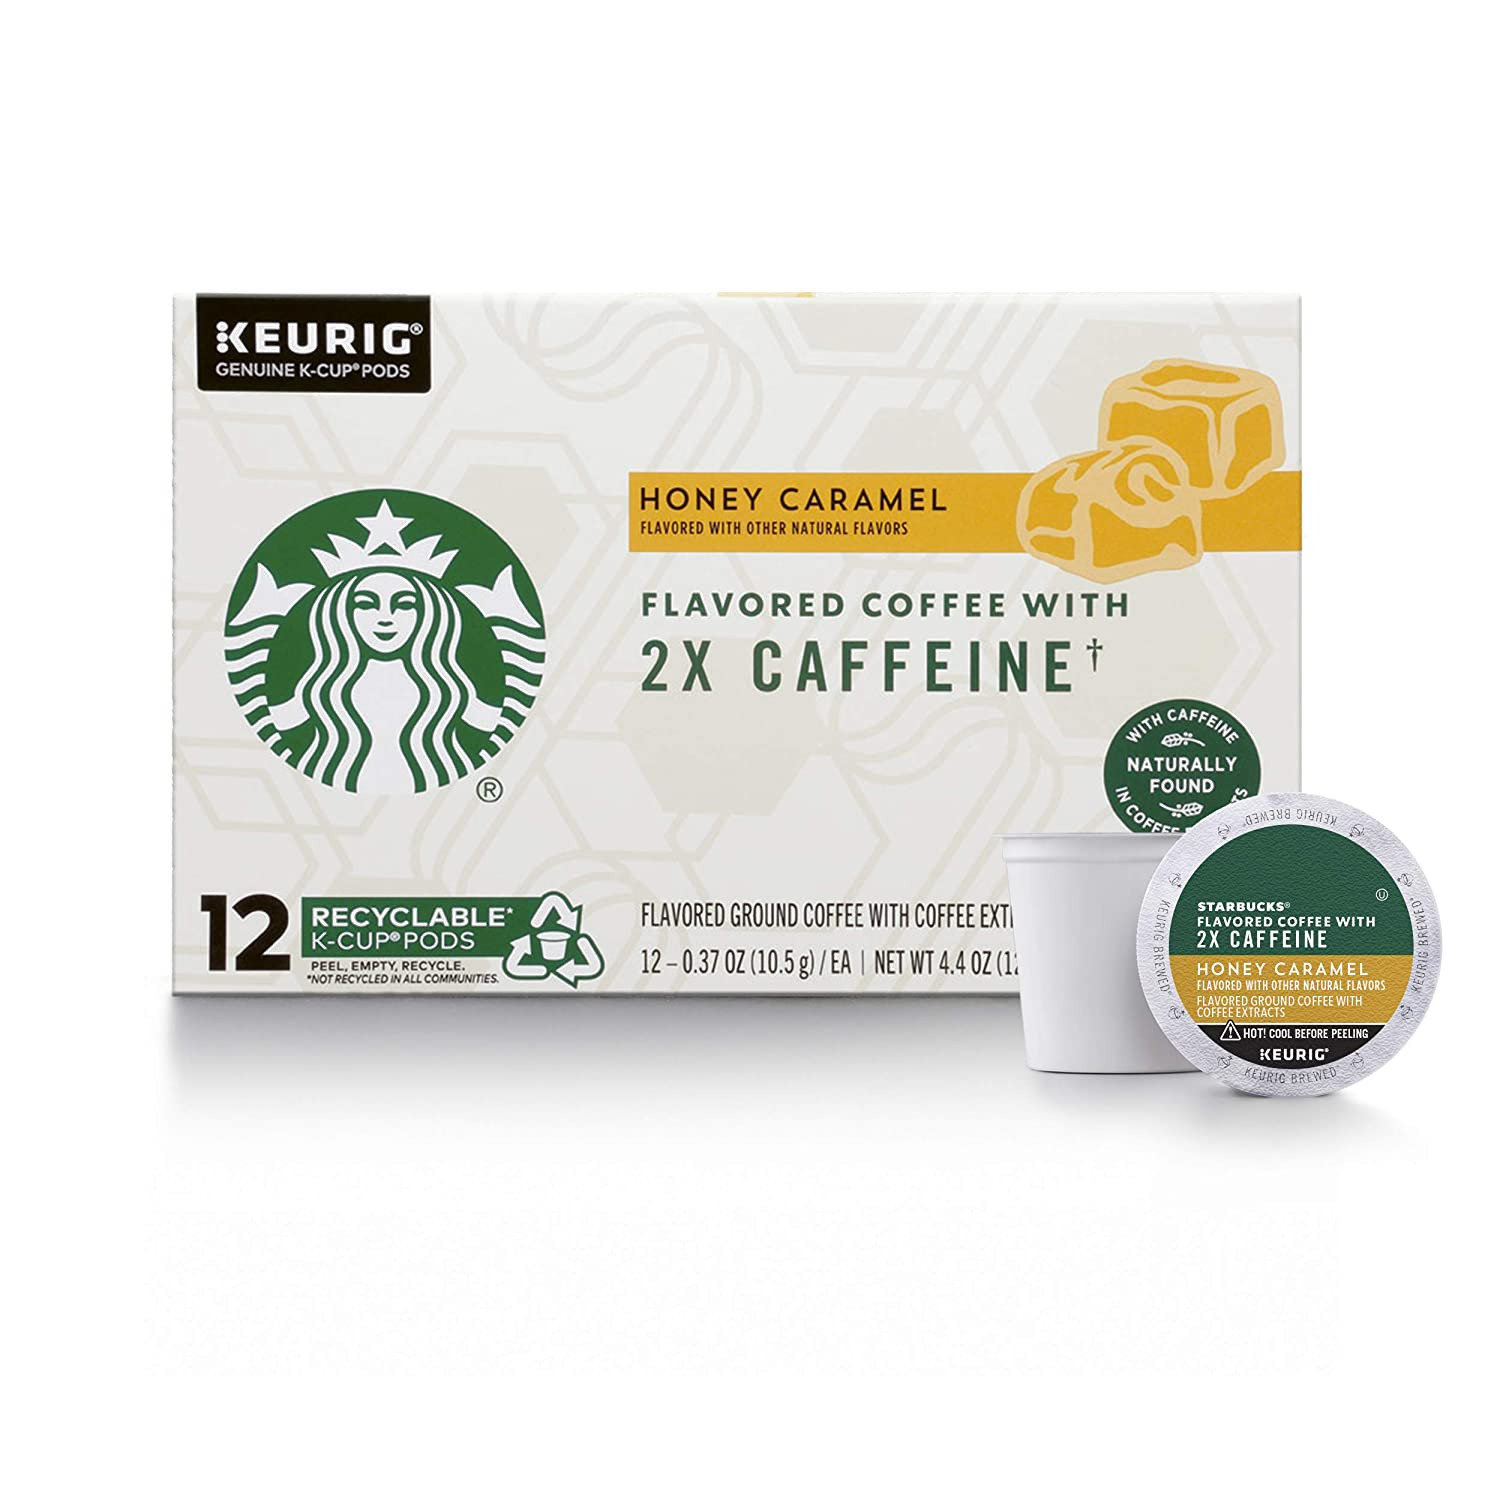 Starbucks Flavored K-Cup Coffee Pods with 2X Caffeine — Honey Caramel for Keurig Brewers , 12 Count (Pack of 4)